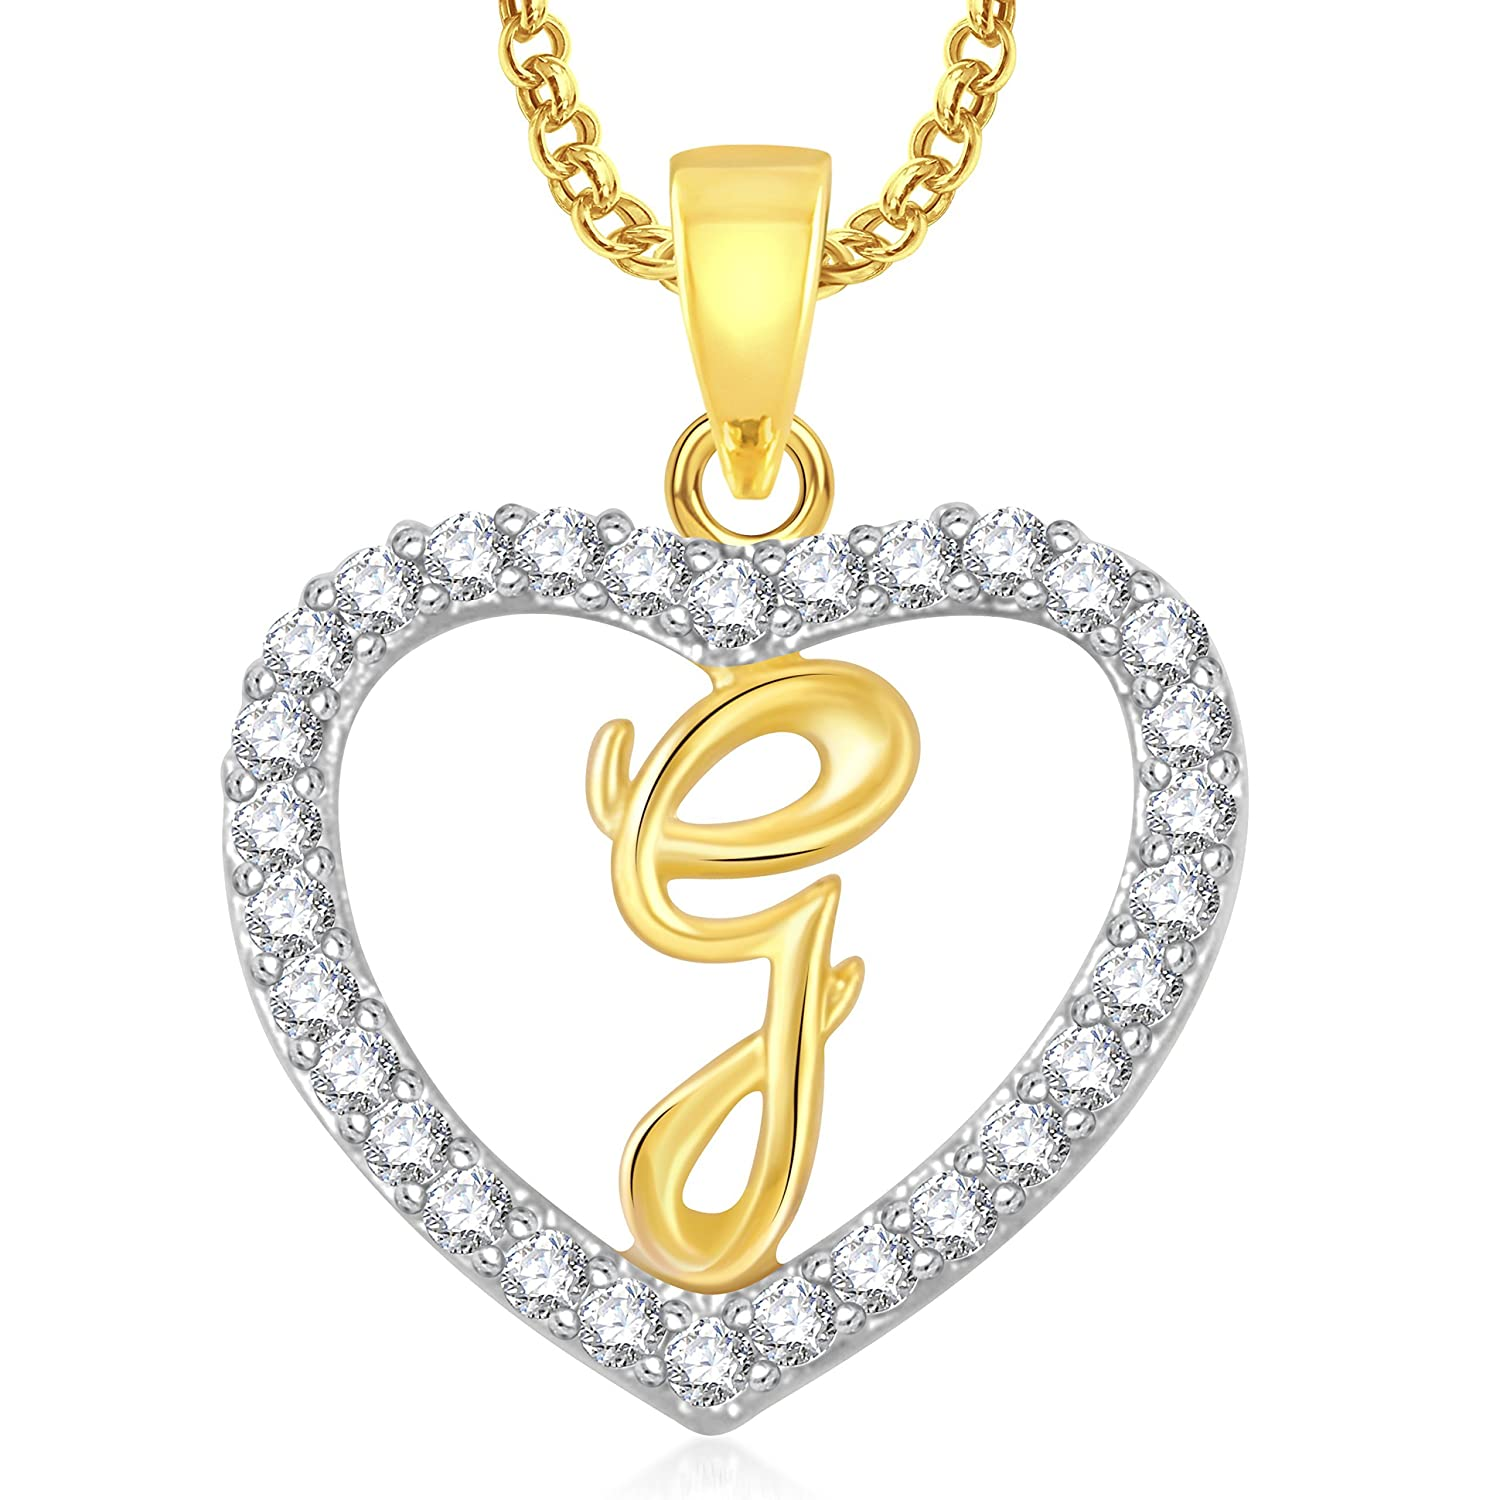 Buy Meenaz G Letter Heart Pendant Locket Alphabet For Women And Men With Chain Gold Plated In American Diamond Cz Online At Low Prices India